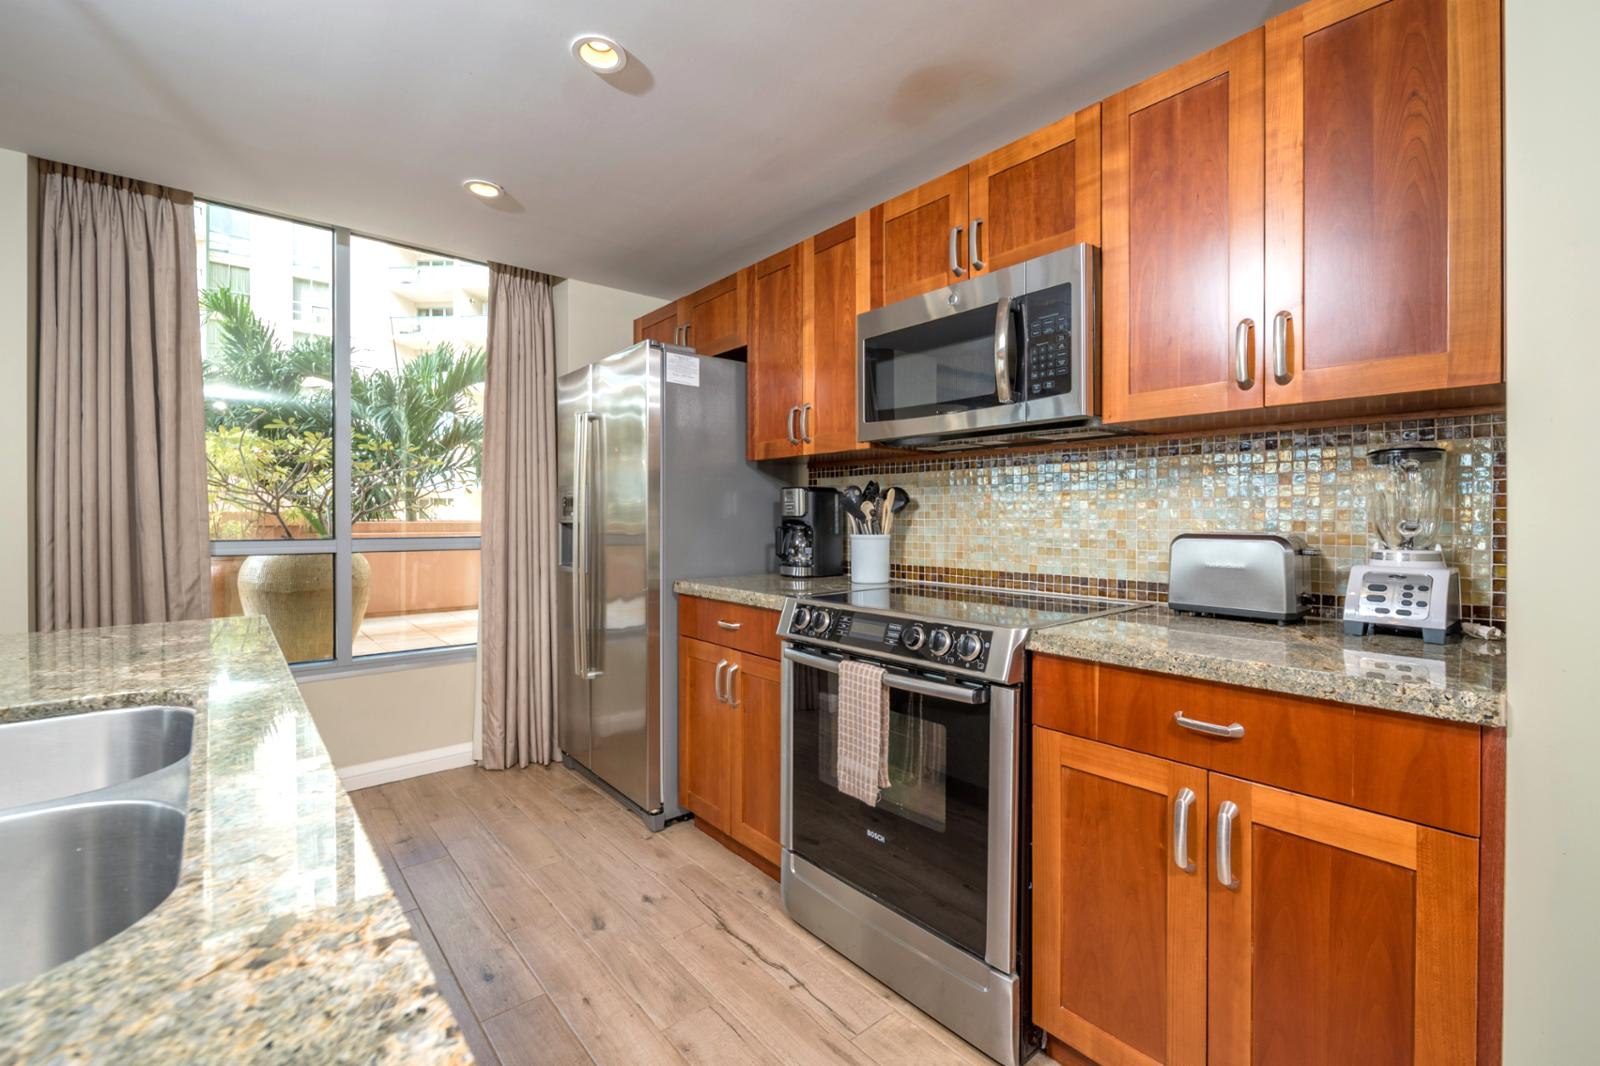 Chic, clean, and upgrade stainless appliances